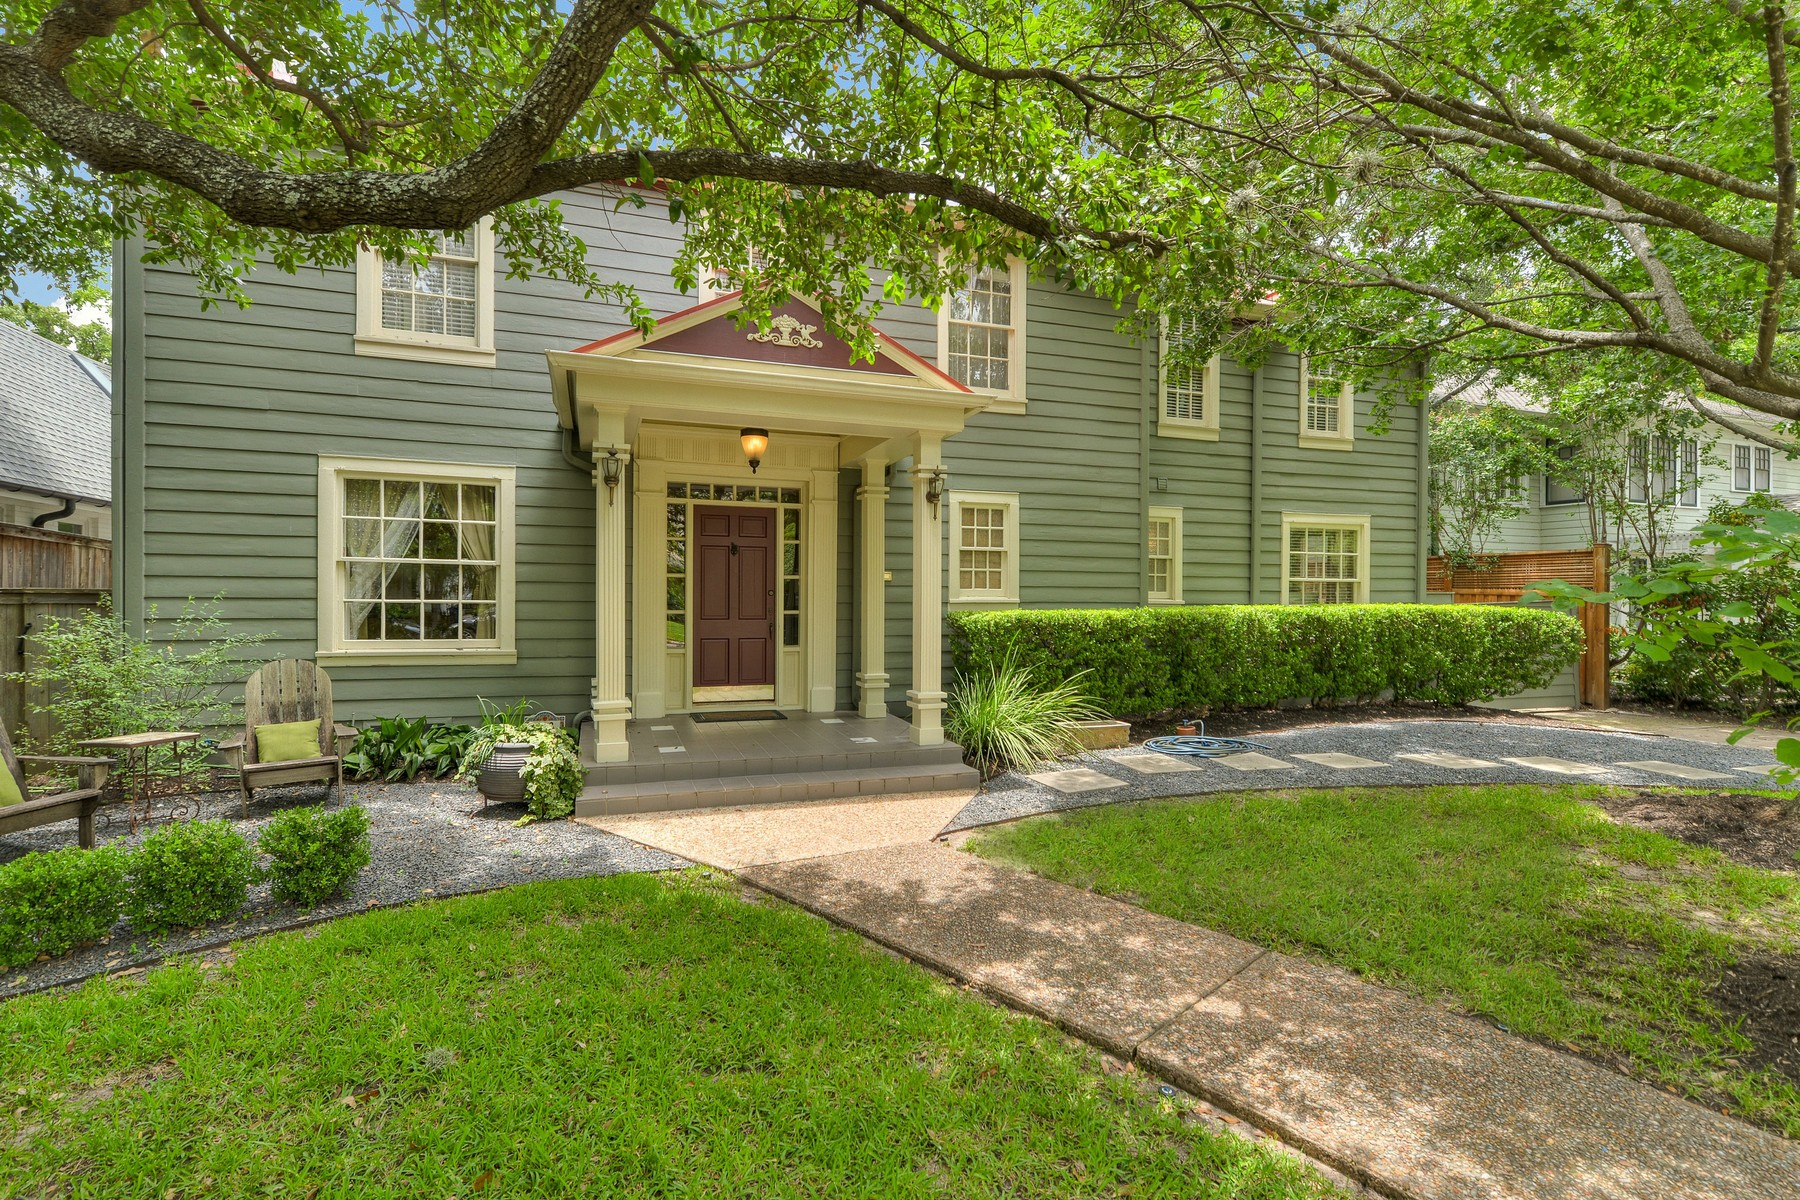 Moradia para Venda às Spacious 1930s Colonial Revival in Aldridge Place 103 W 32nd St Austin, Texas, 78705 Estados Unidos